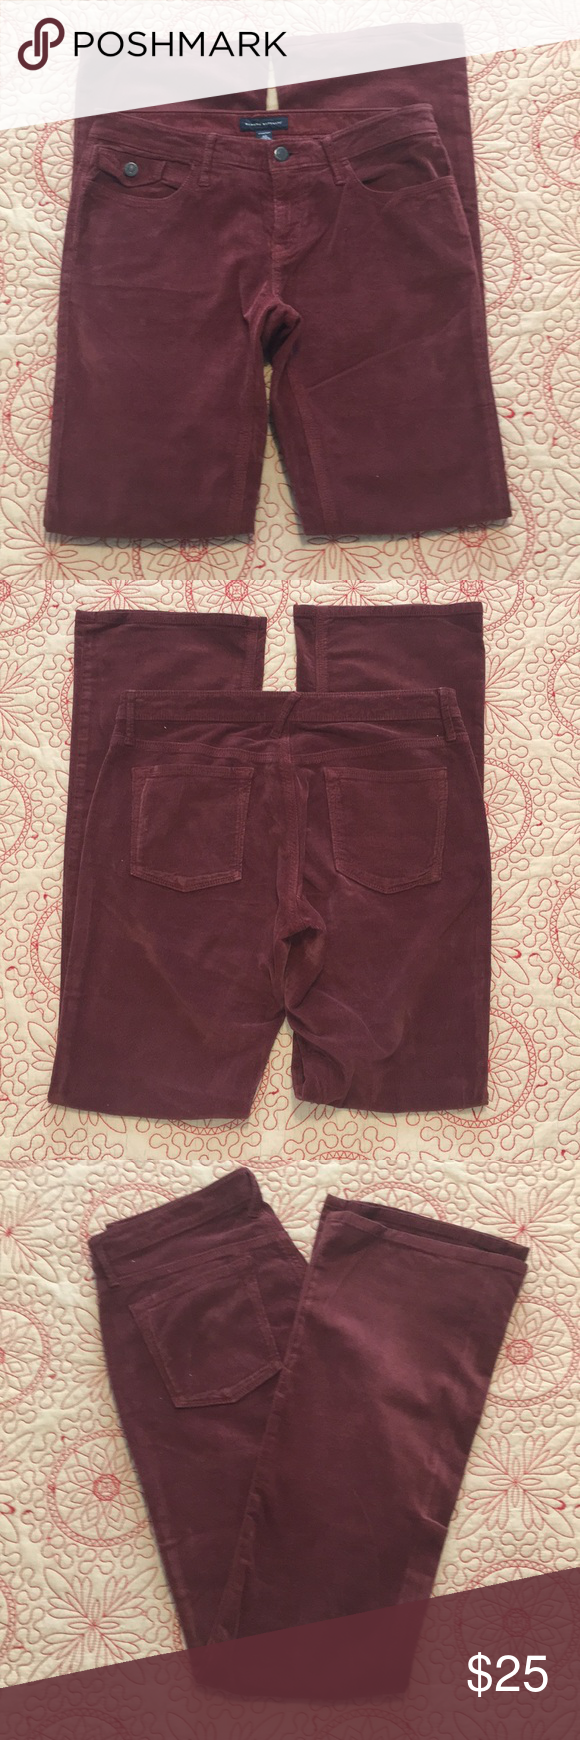 005ca02bf4 Banana Republic, size 4S Banana Republic, size 4S, worn very gentle, bricks  color, perfect condition, belt width 40 cm, length 100 cm, stretch corduroy  ...